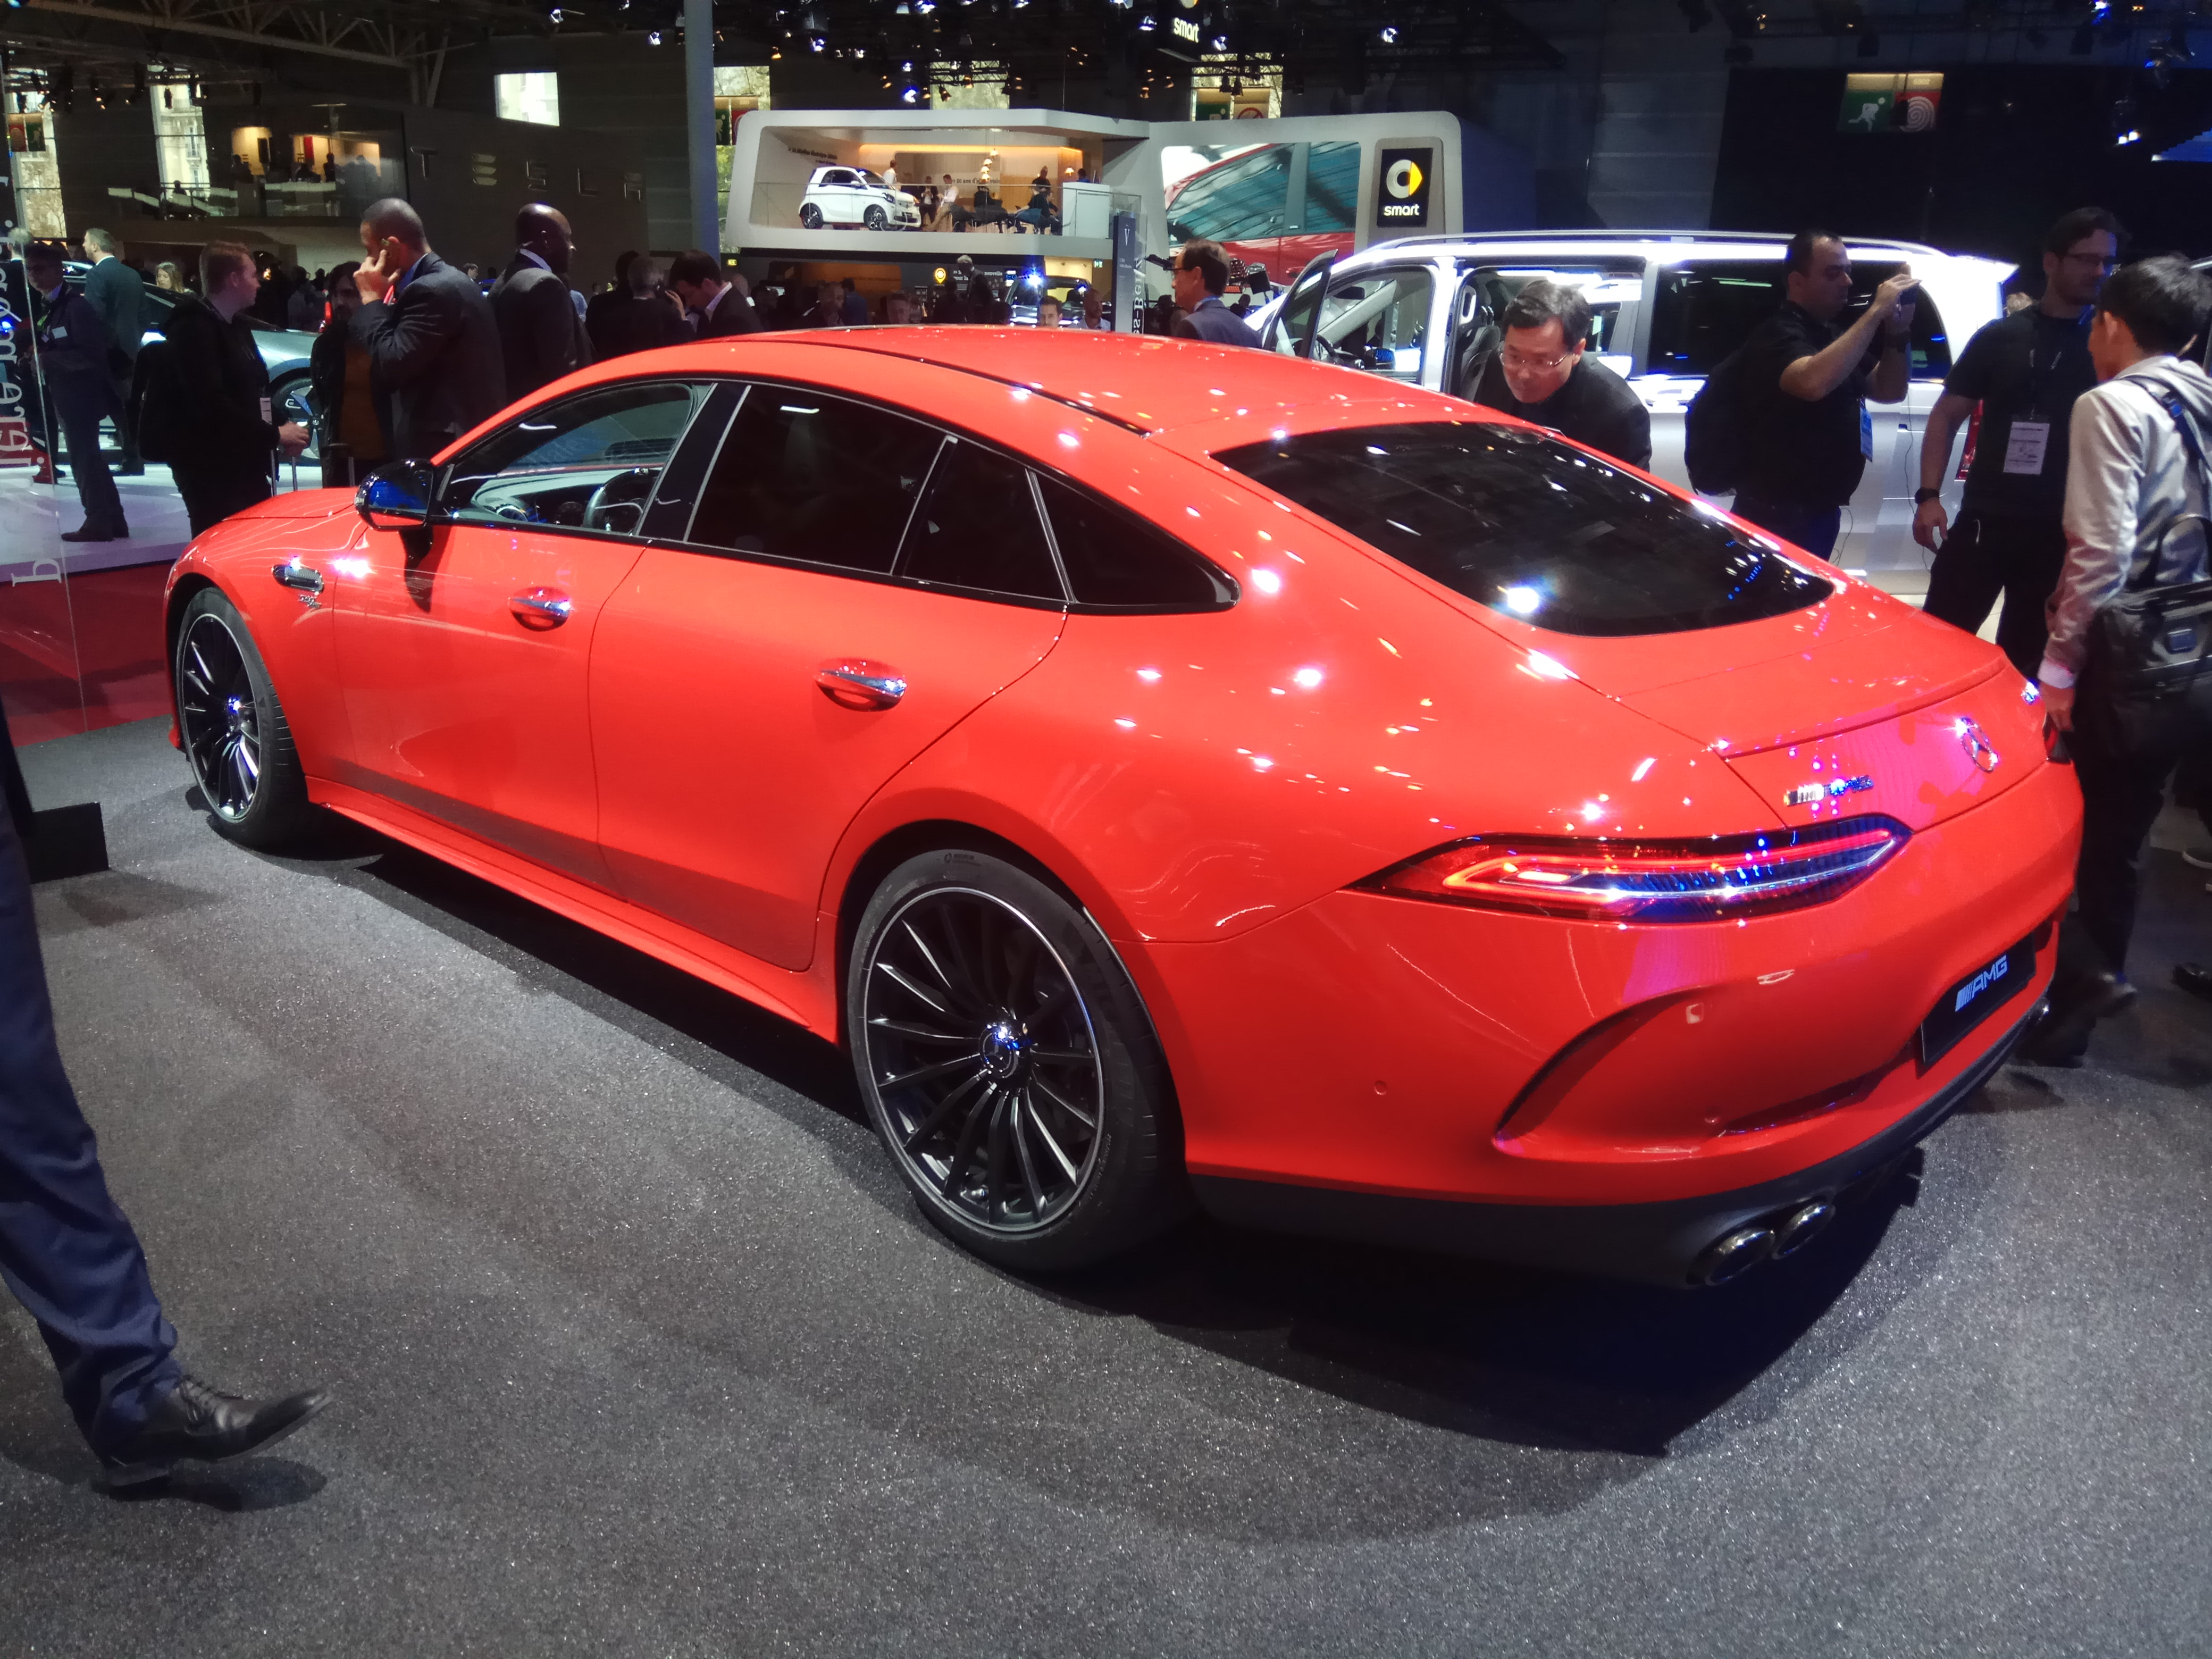 live from paris 2018 the new mercedes amg gt 4 door coupe. Black Bedroom Furniture Sets. Home Design Ideas